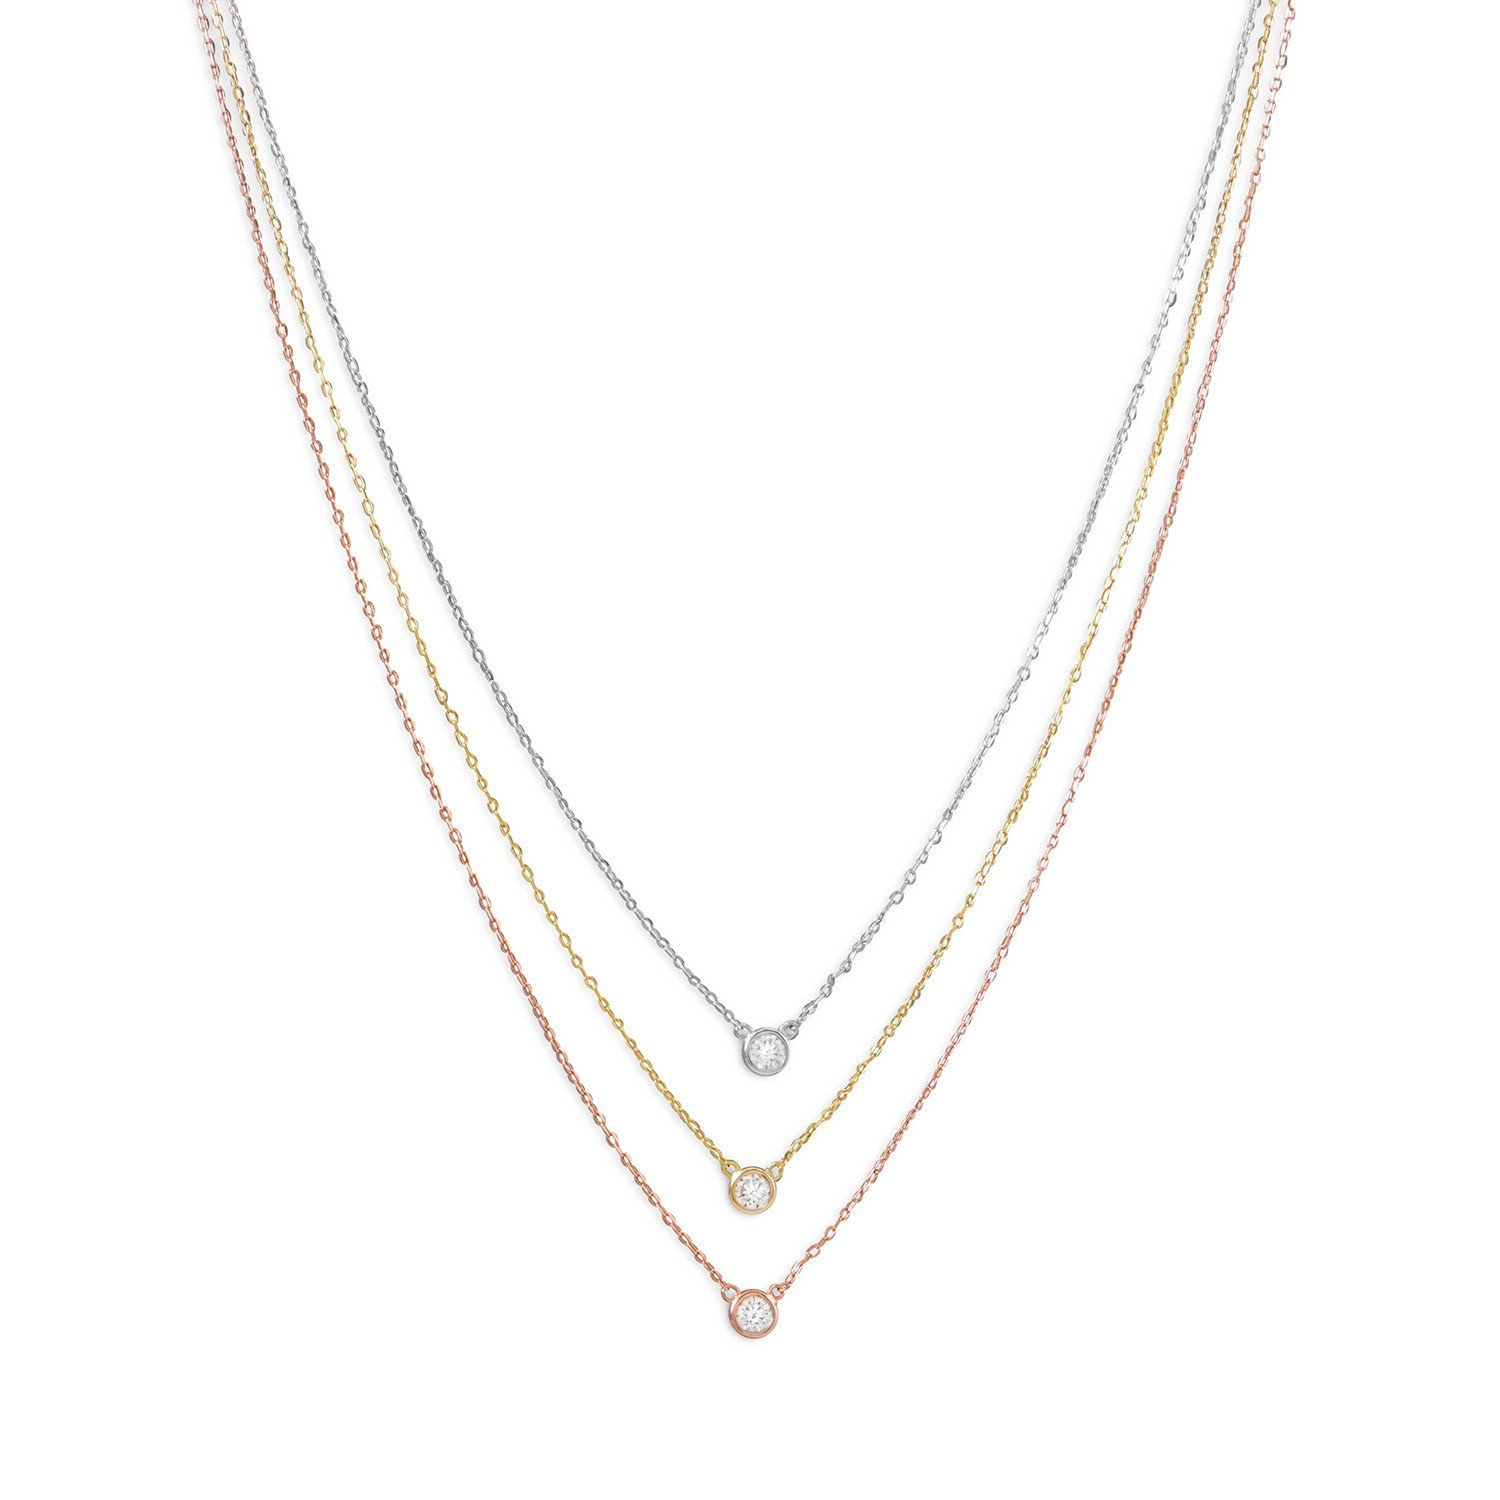 West Coast Jewelry 925 Sterling Silver Graduated Tri Tone Necklace with CZs 34031